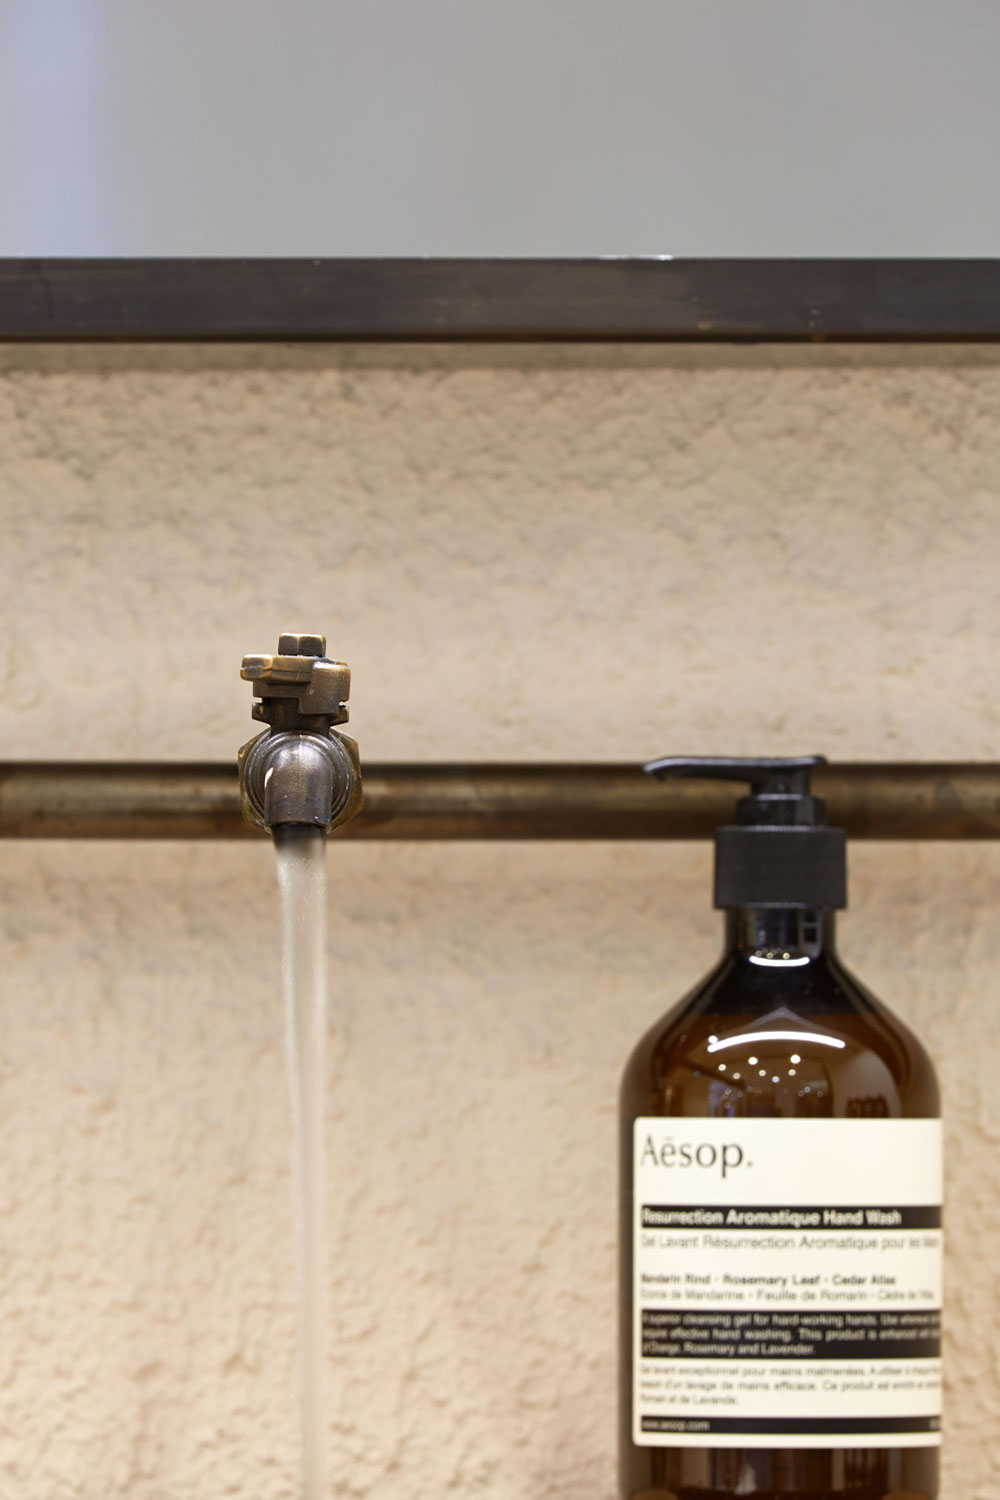 Aesop-Indooroopilly-Web-032.jpg